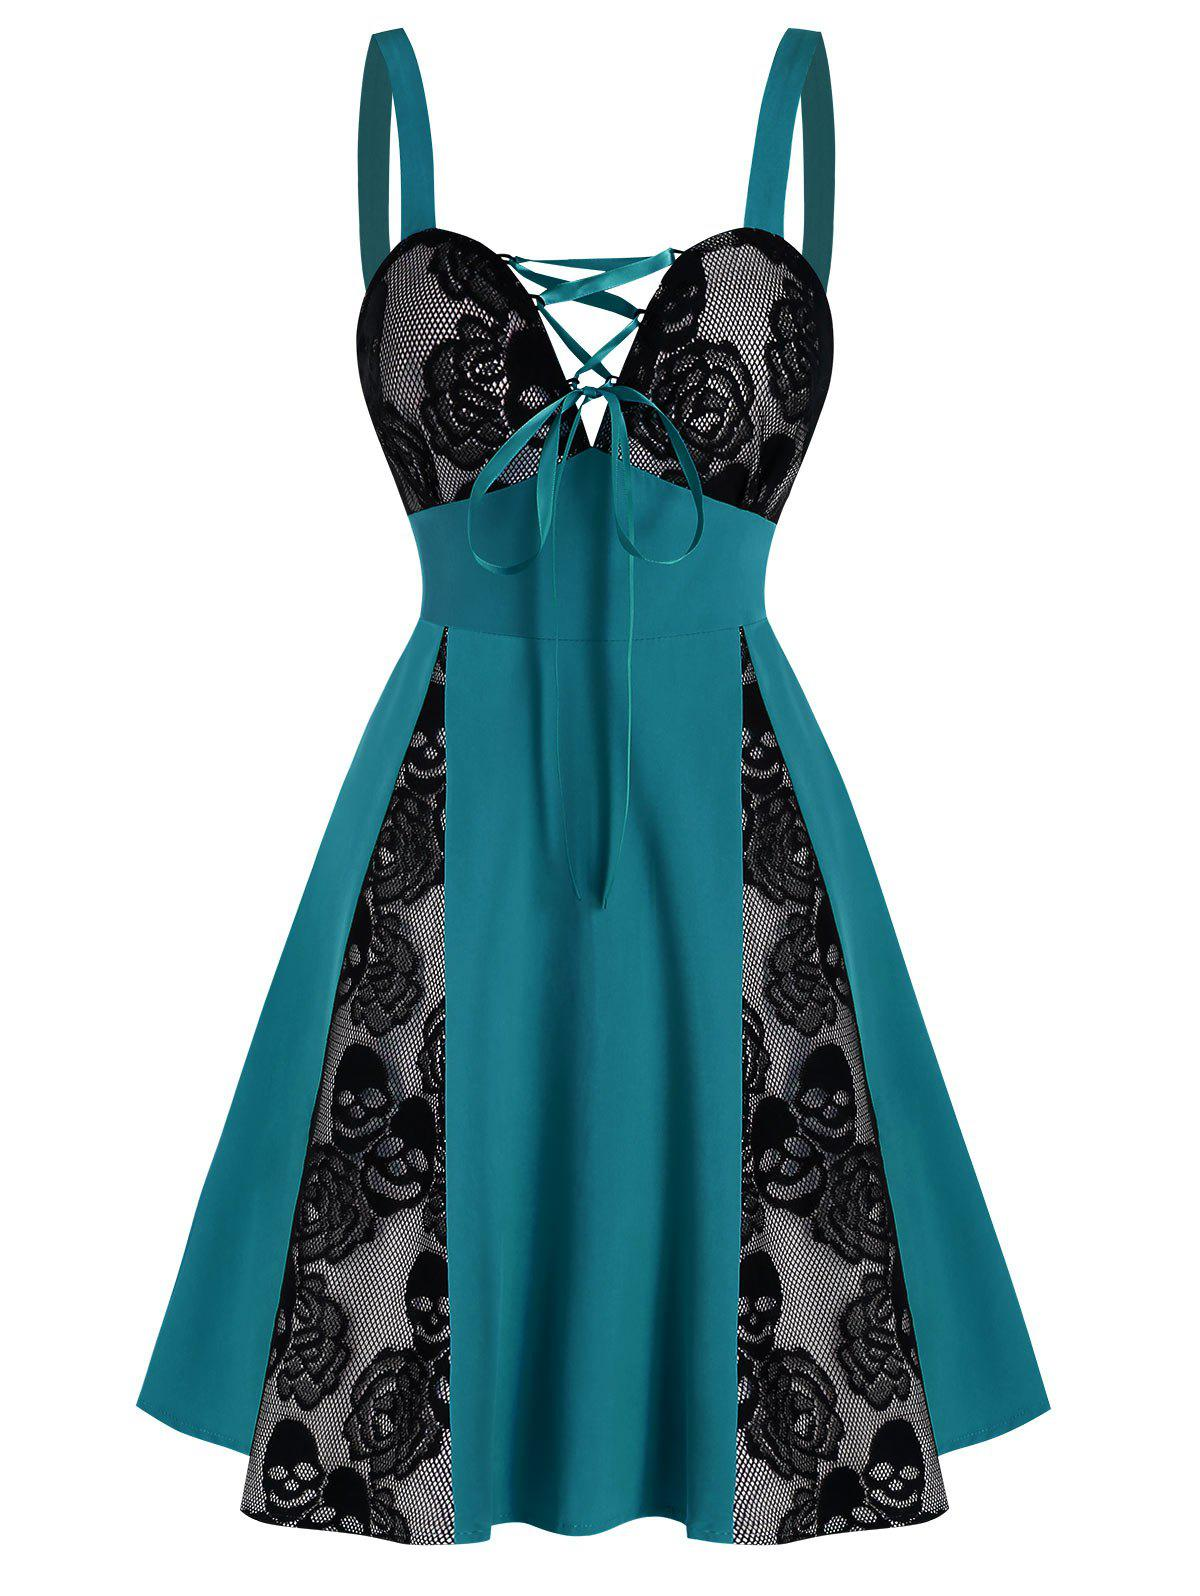 Skull Floral Lace Panel Colorblock Mini Dress - DARK TURQUOISE M